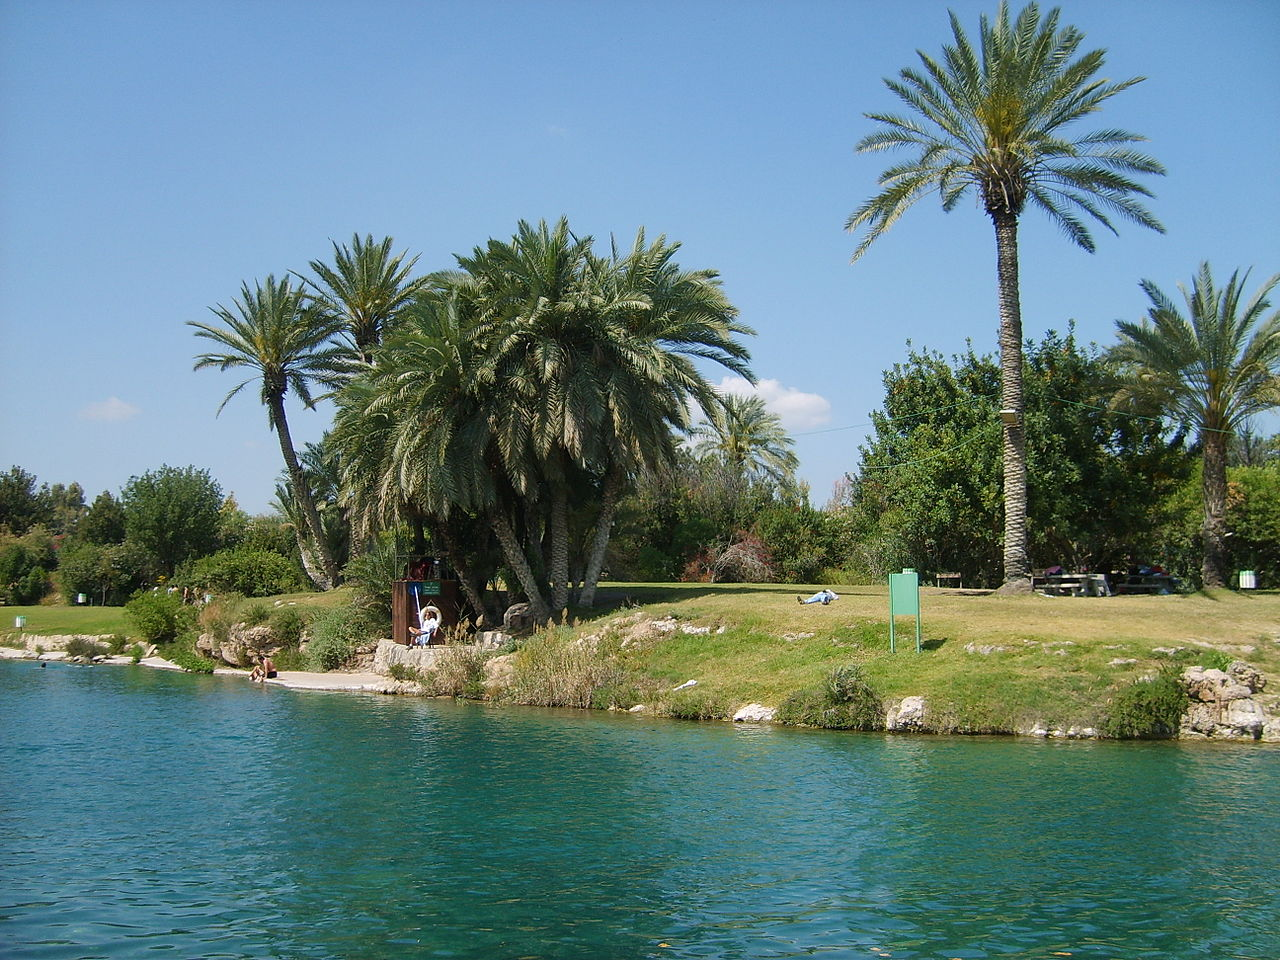 https://upload.wikimedia.org/wikipedia/commons/thumb/b/be/Gan_Hashlosha_National_Park_Pool1_200704.JPG/1280px-Gan_Hashlosha_National_Park_Pool1_200704.JPG